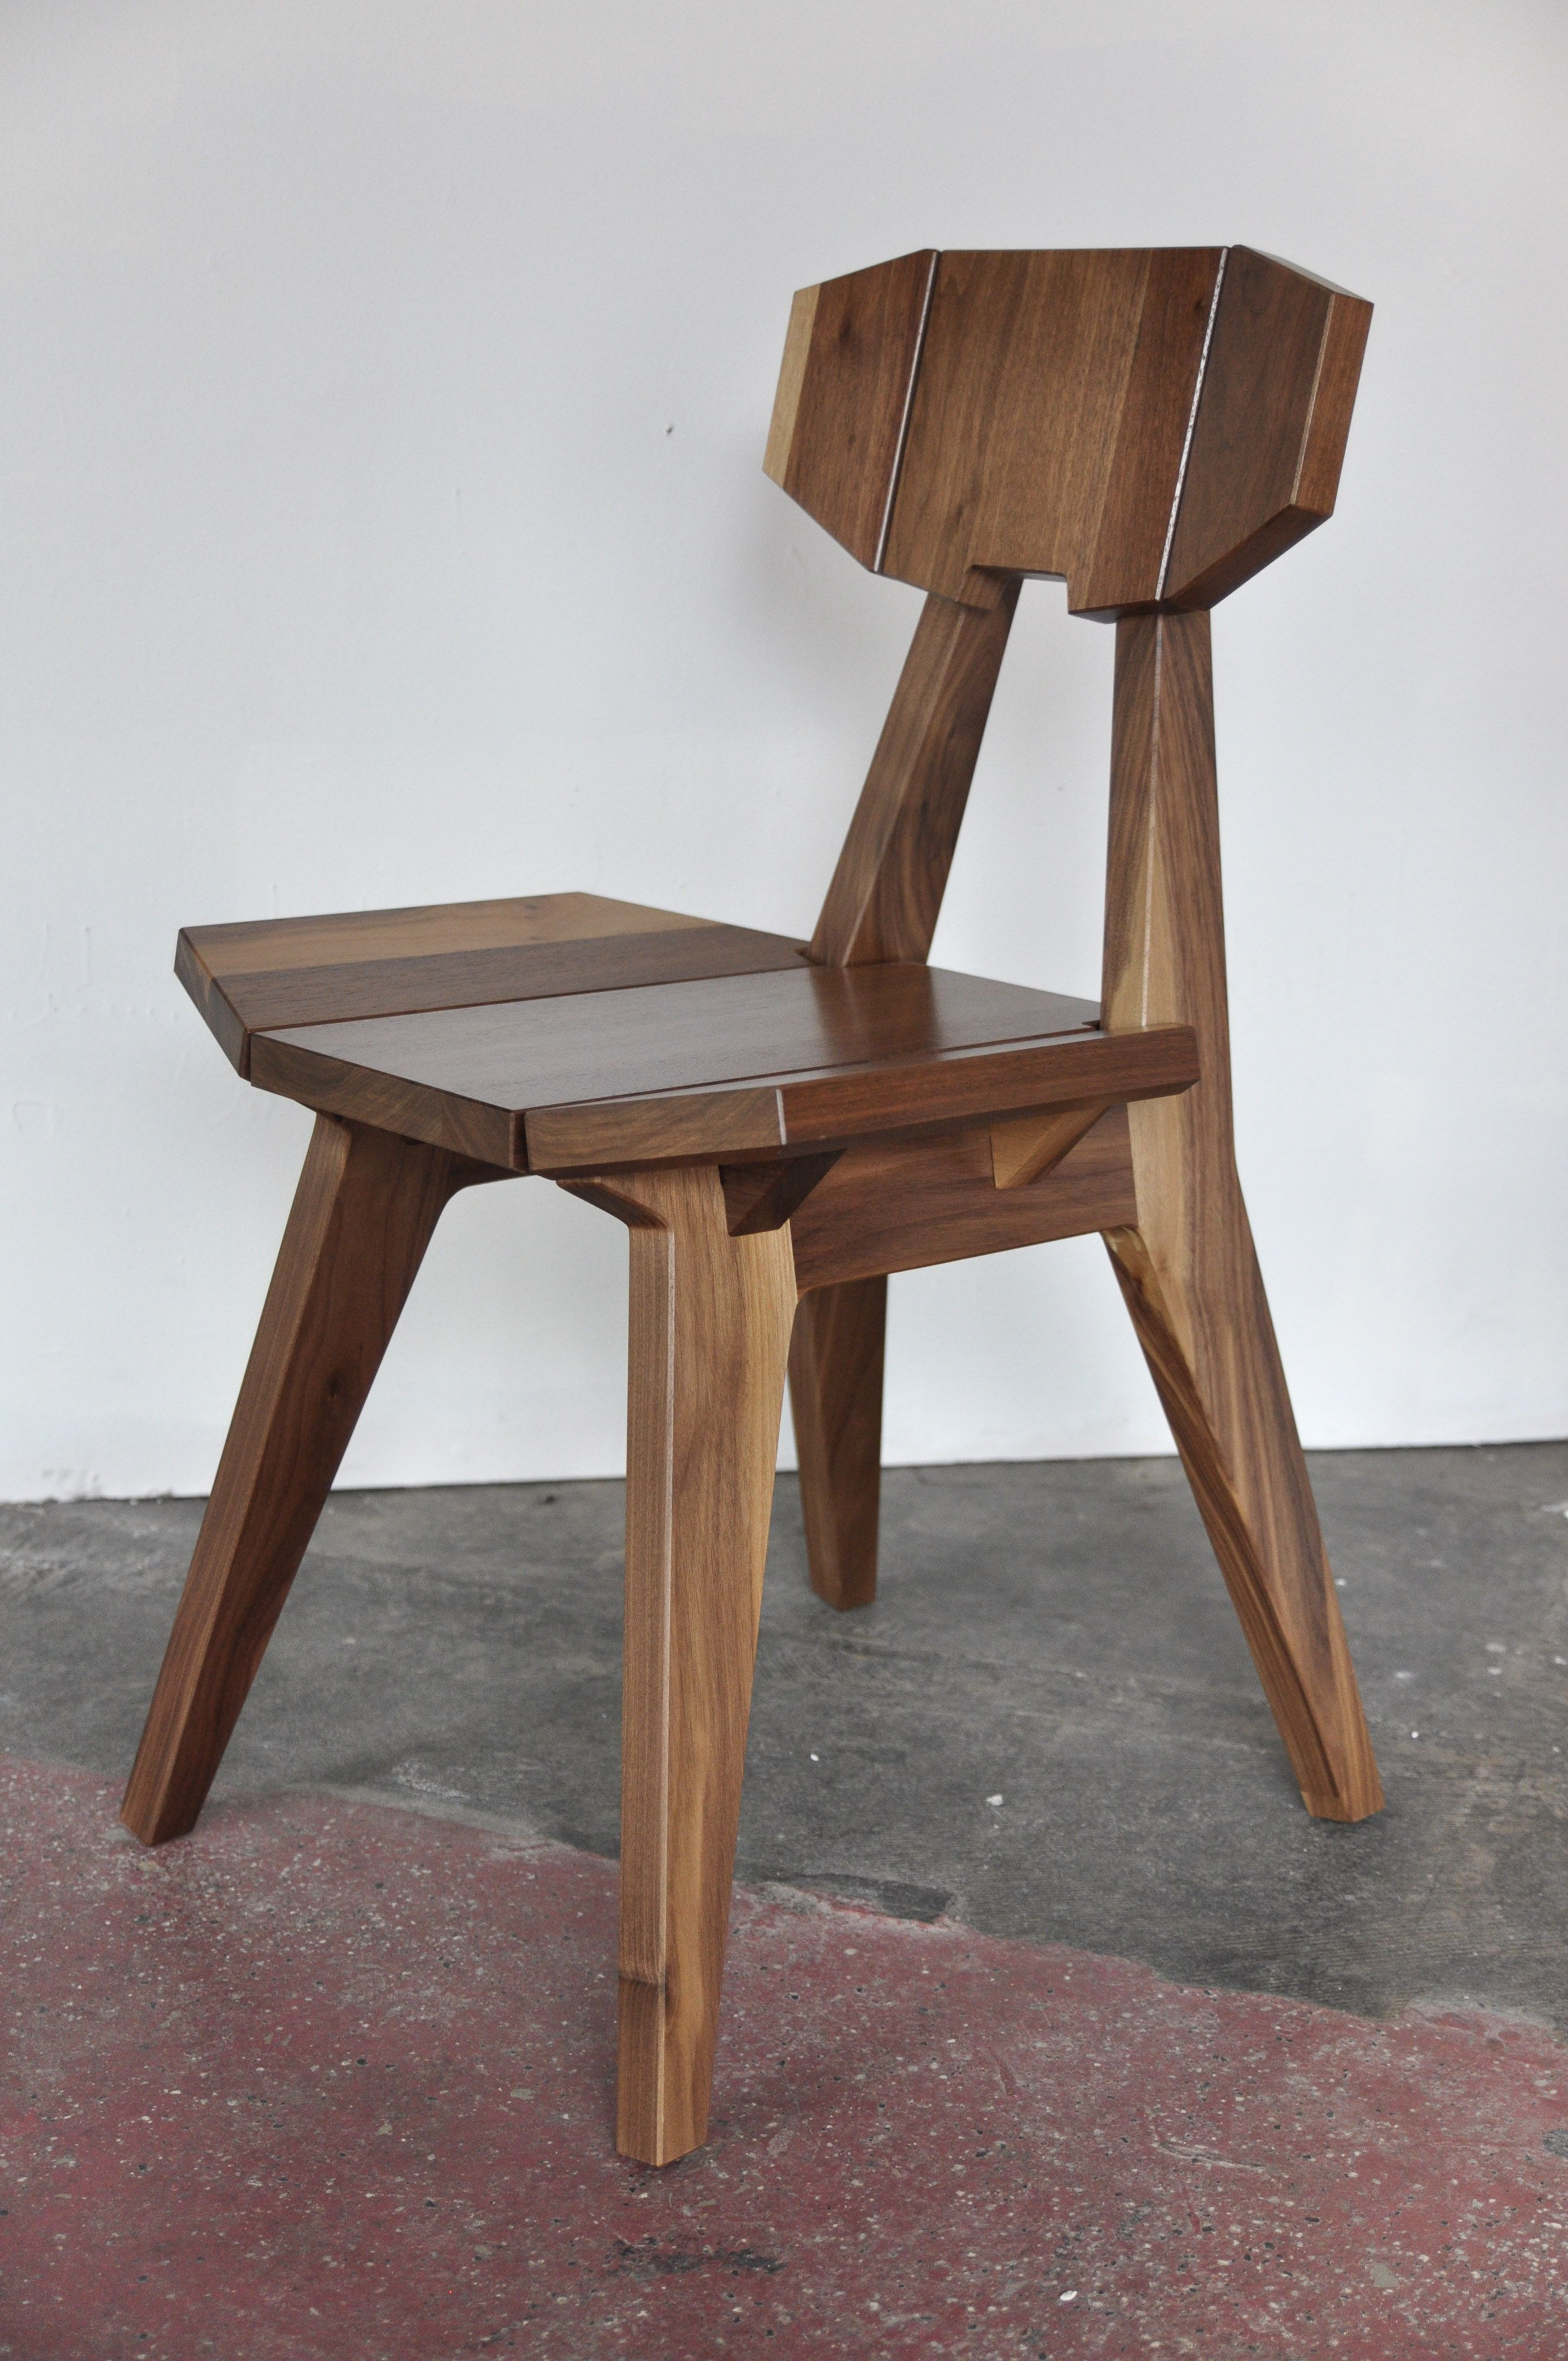 facet chair by Unto This Last Olivier Geoffroy digital furniture built on demand micro manufacturing plywood Pinterest